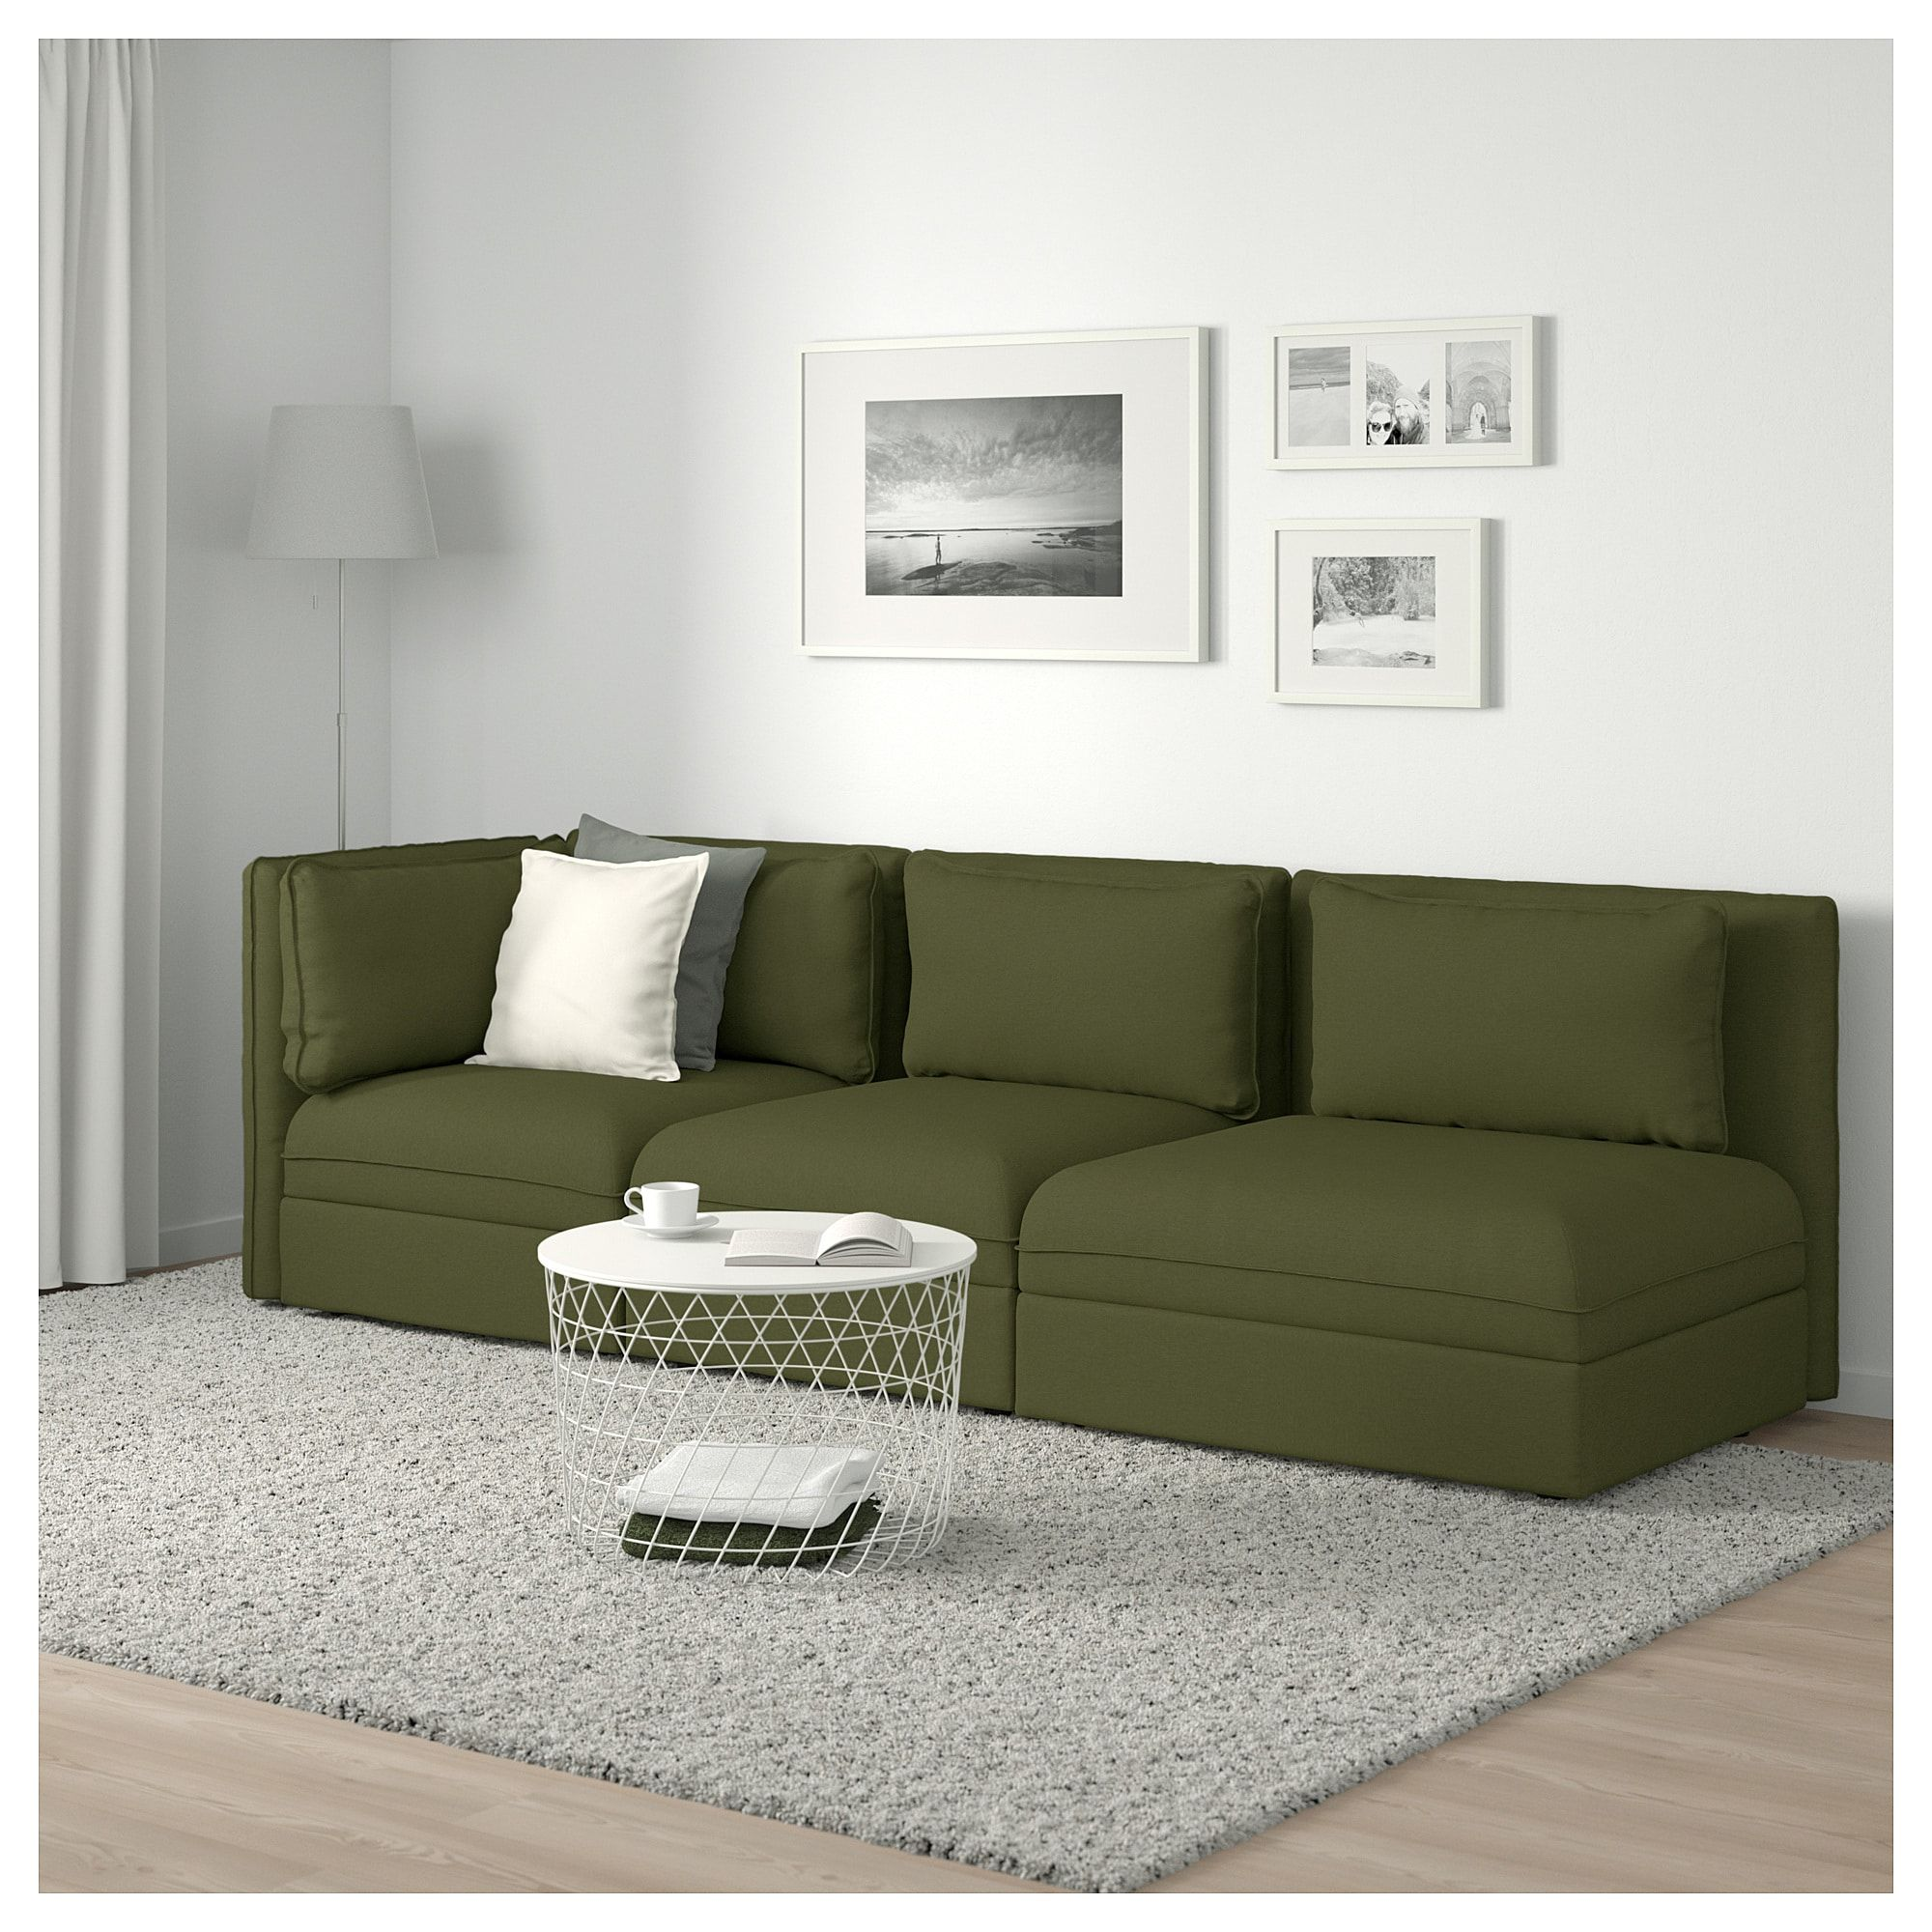 Tremendous Ikea Vallentuna Sectional 3 Seat With Open End And Lamtechconsult Wood Chair Design Ideas Lamtechconsultcom